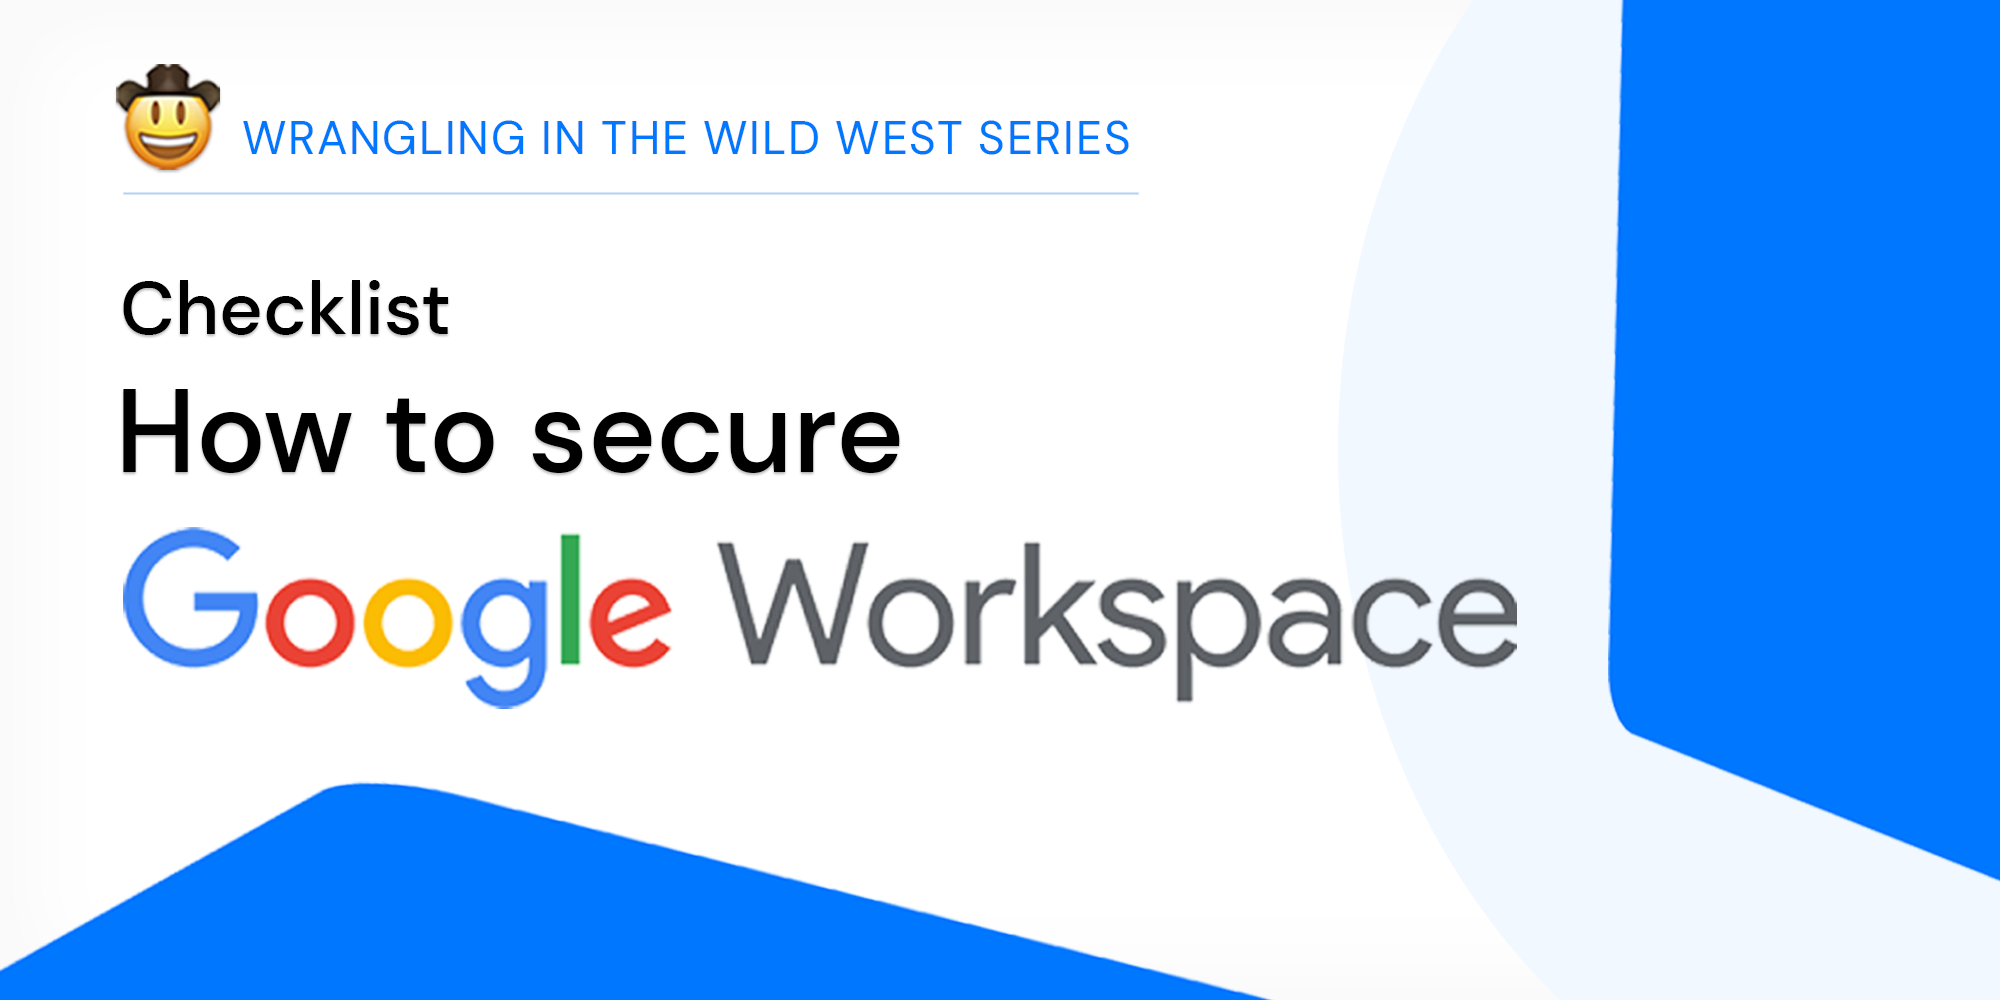 The definitive guide on how to clean up security in Google Workspace